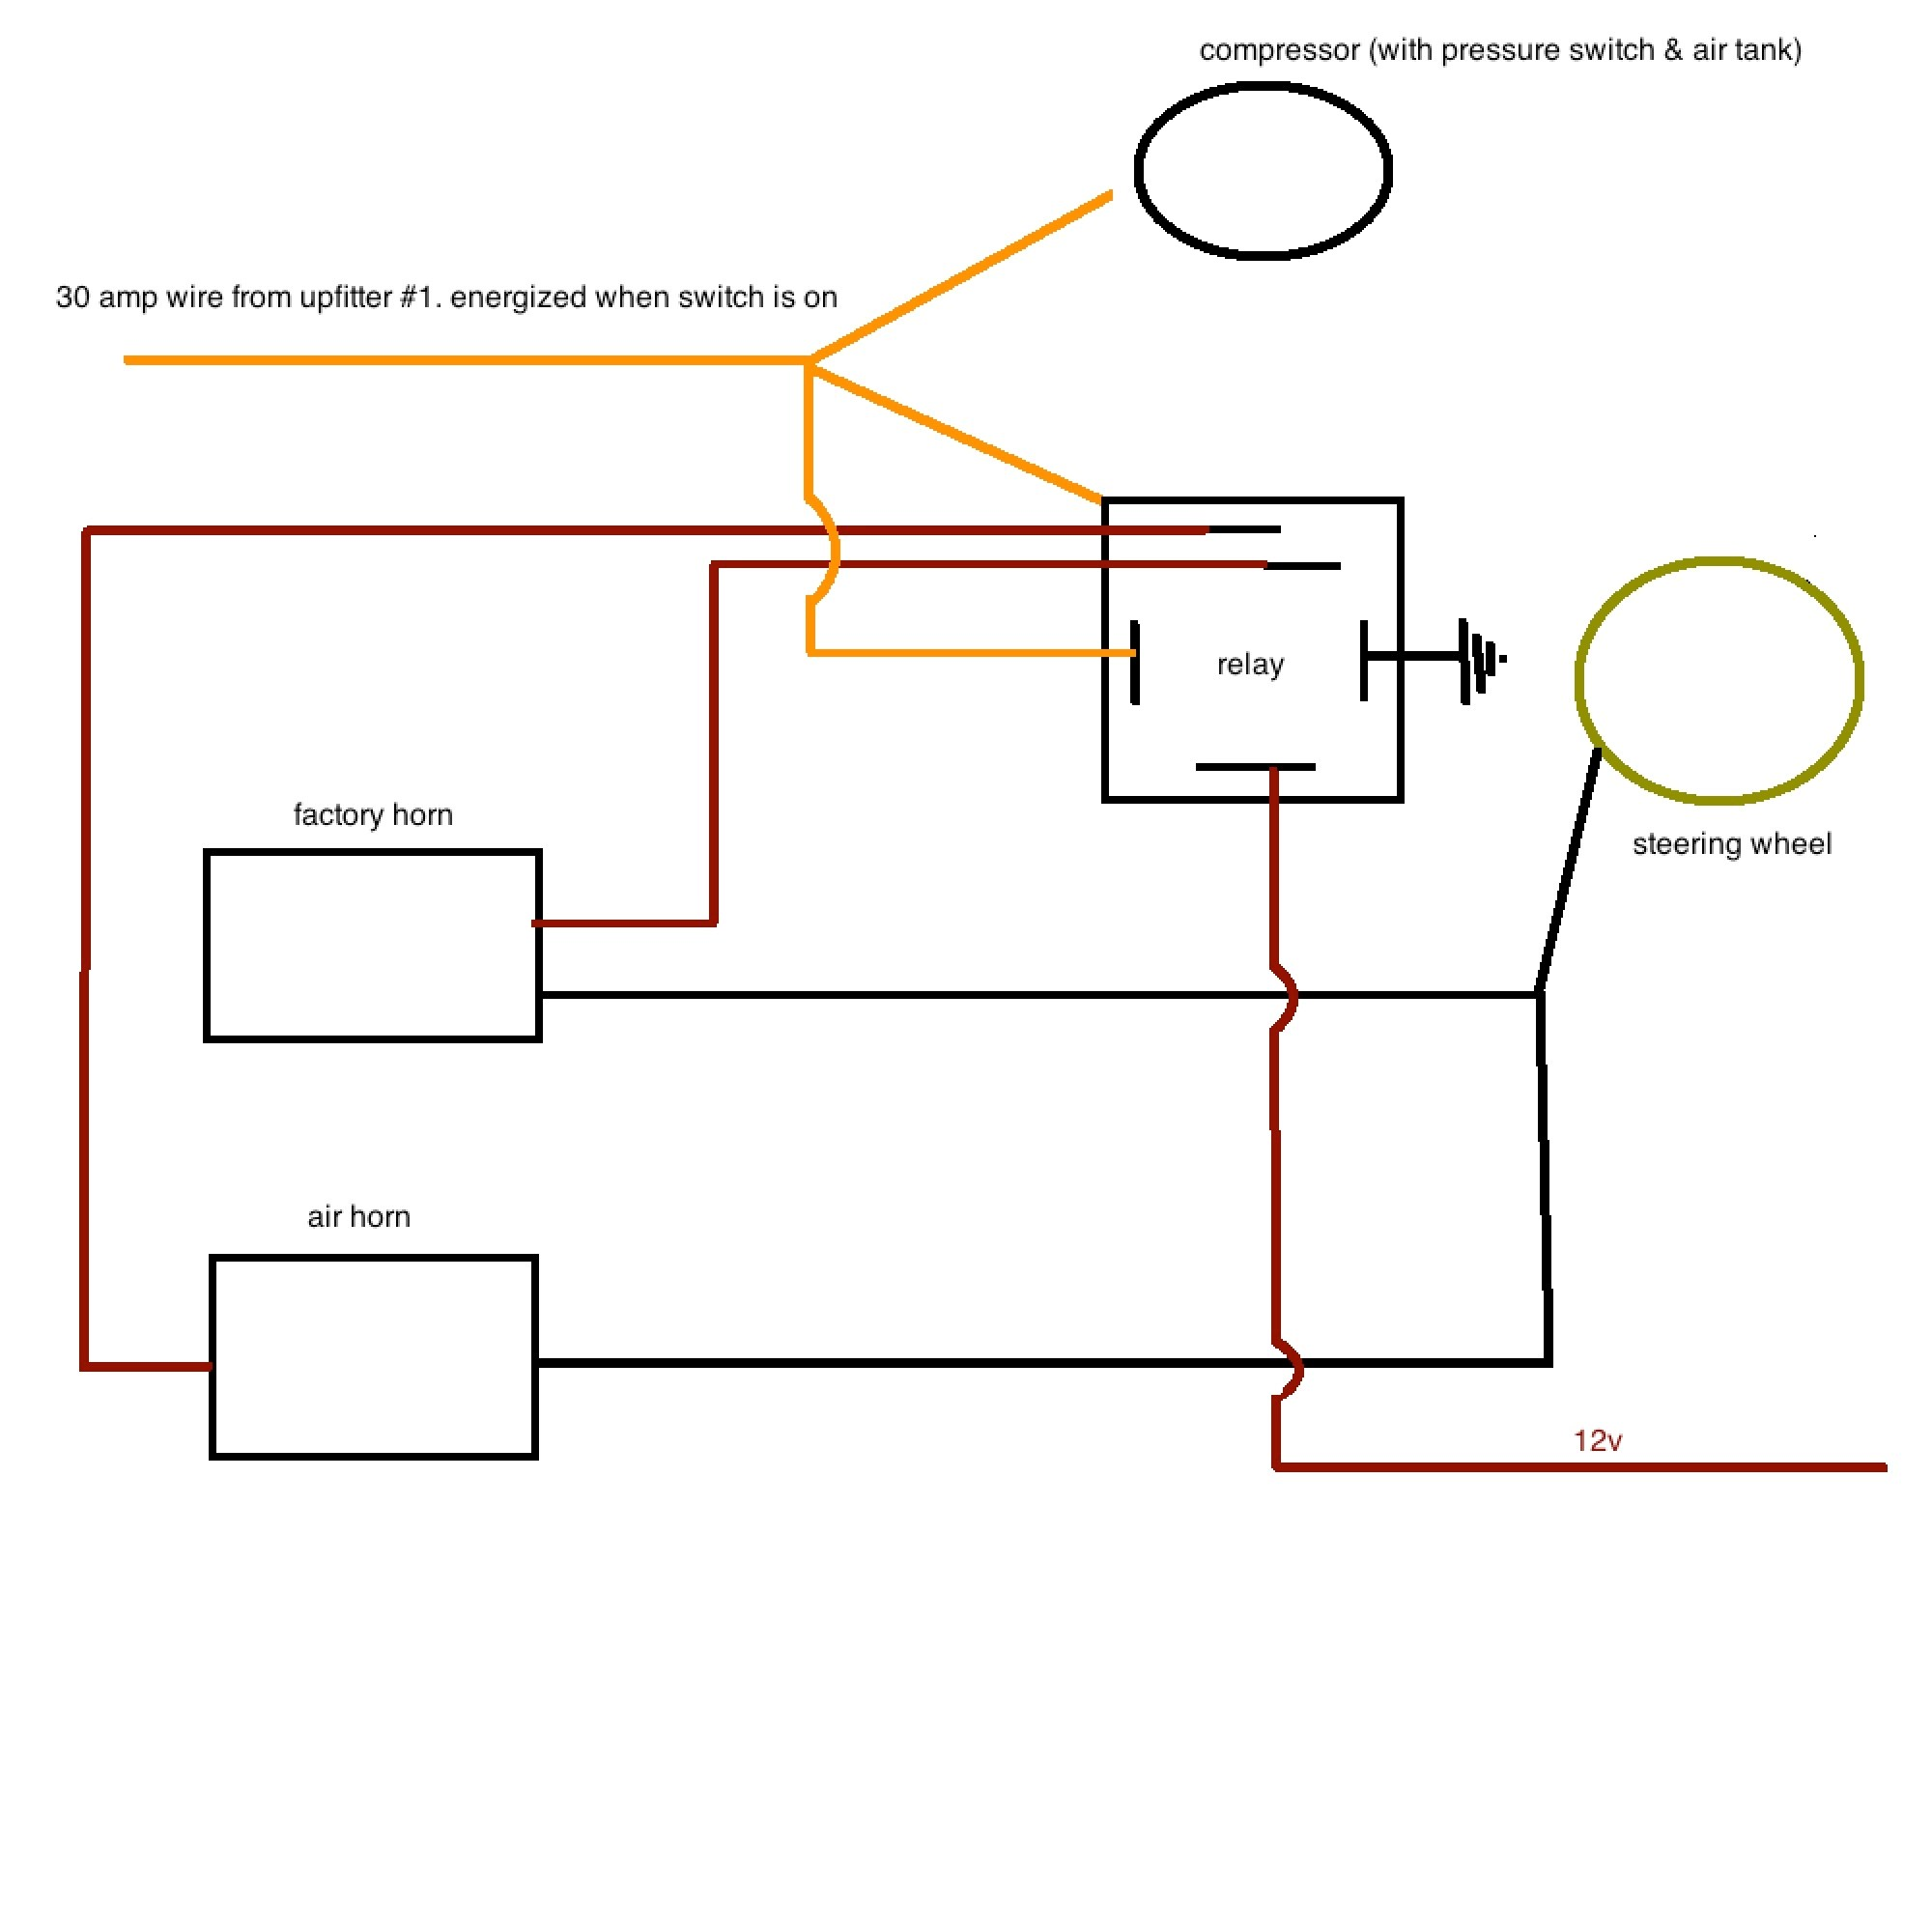 hight resolution of air horn wiring diesel forum thedieselstop com rh thedieselstop com 2000 f250 fuse box diagram ford